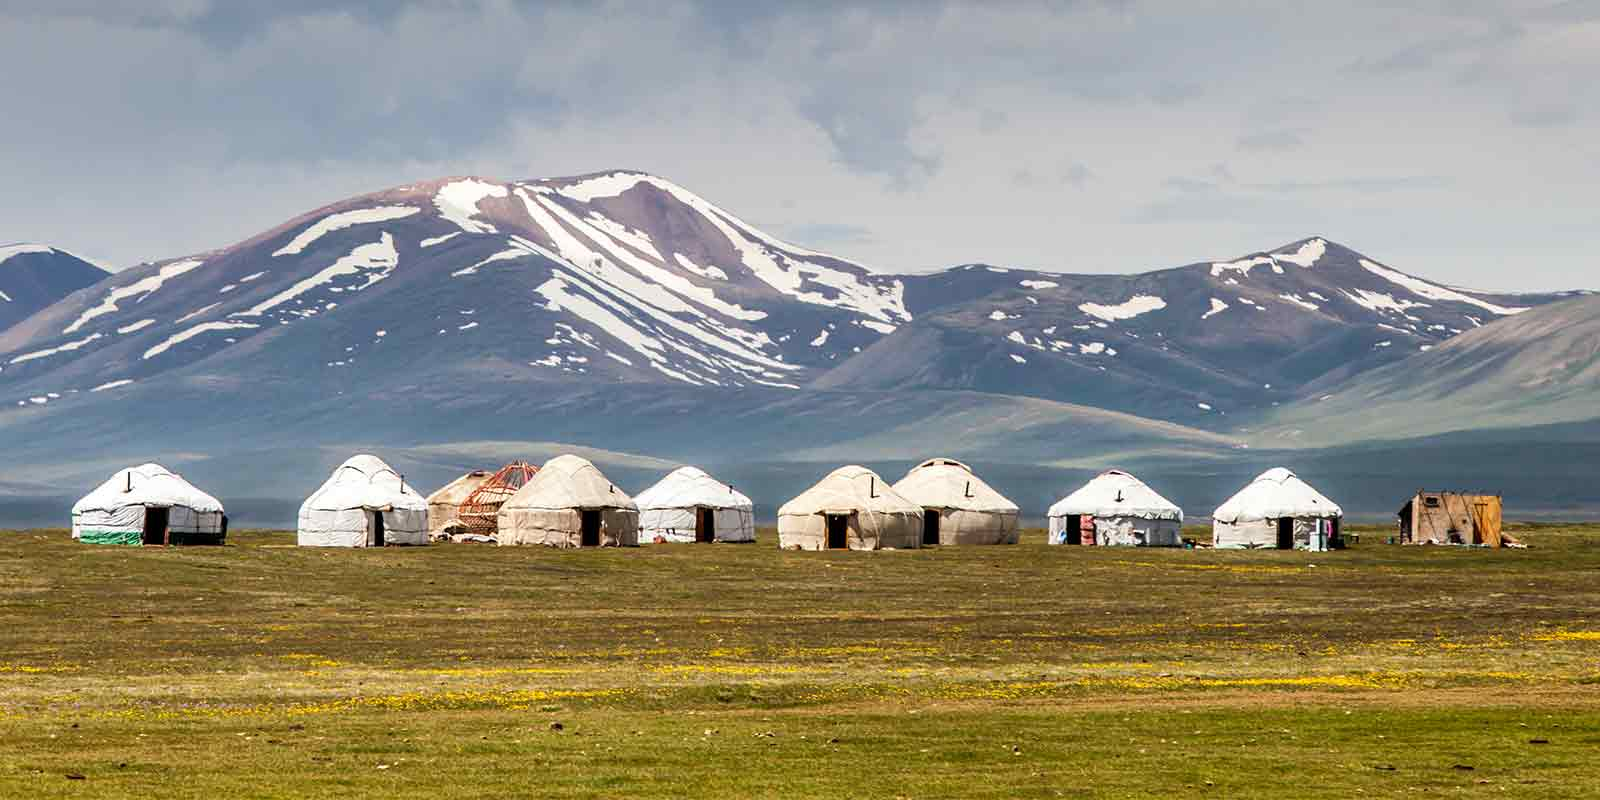 Yurts in shadow of Tien Shan mountains, Kyrgyzstan